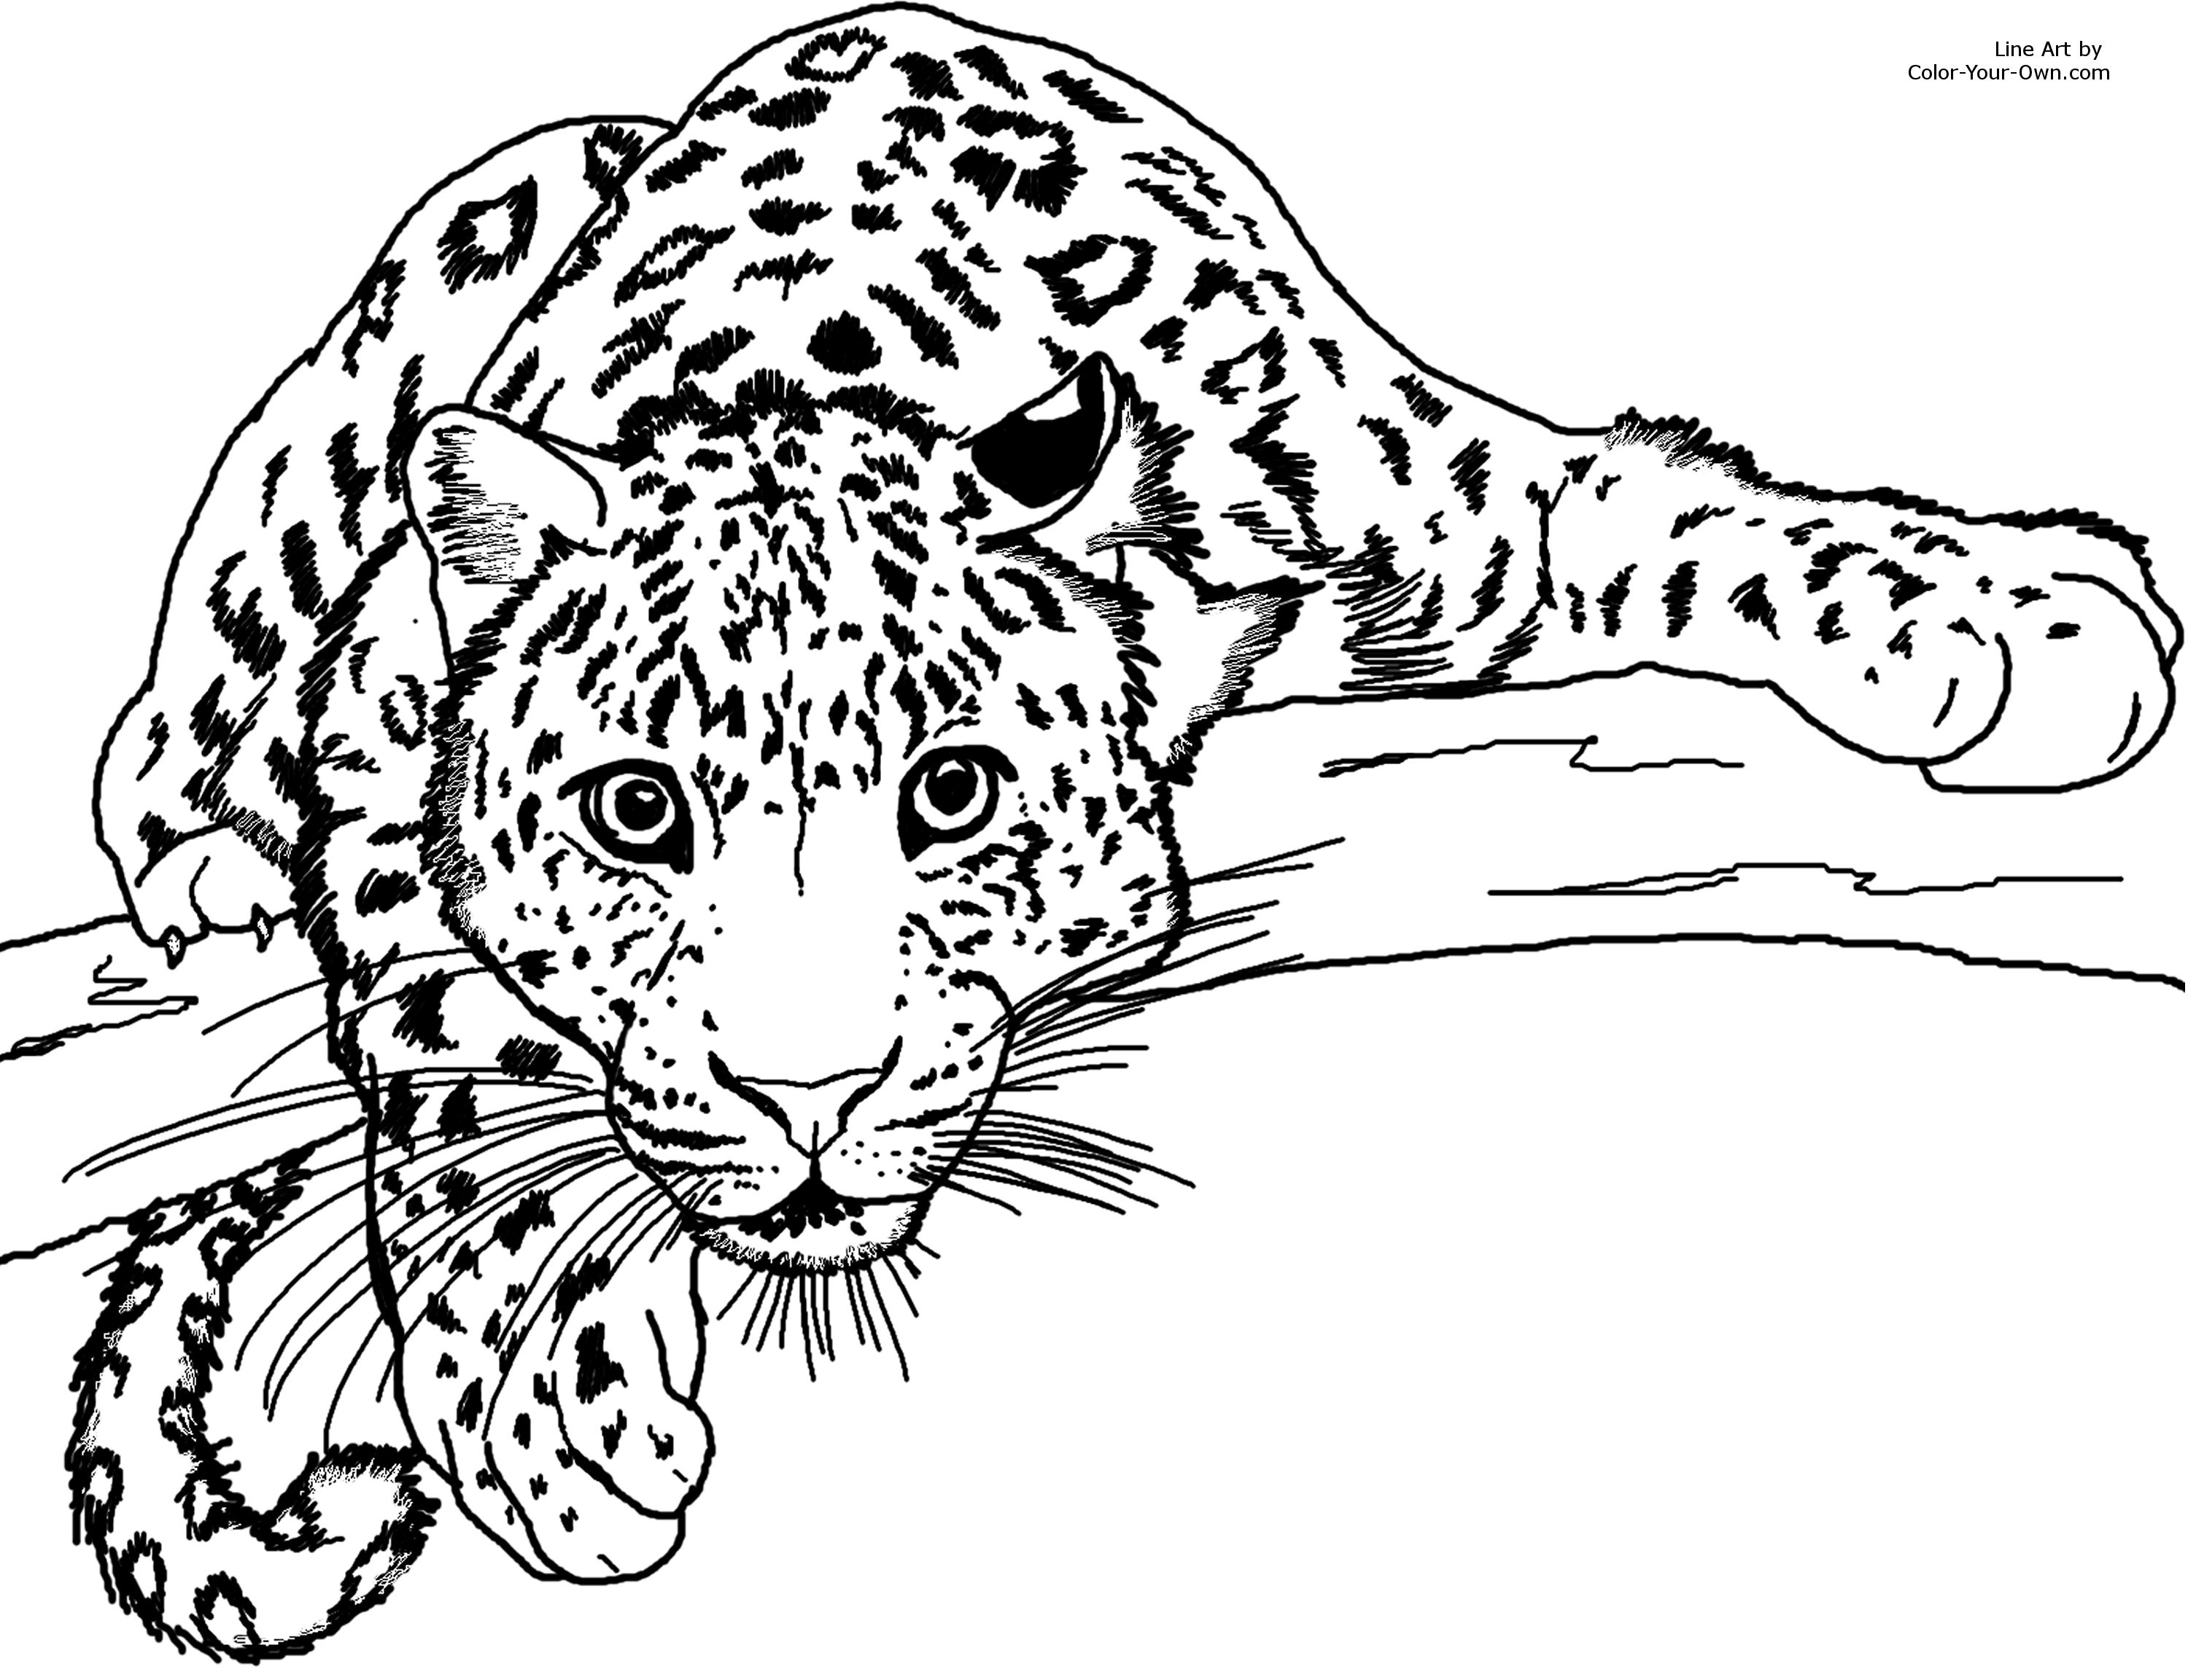 jaguar pictures to color jaguar coloring pages to download and print for free color pictures jaguar to